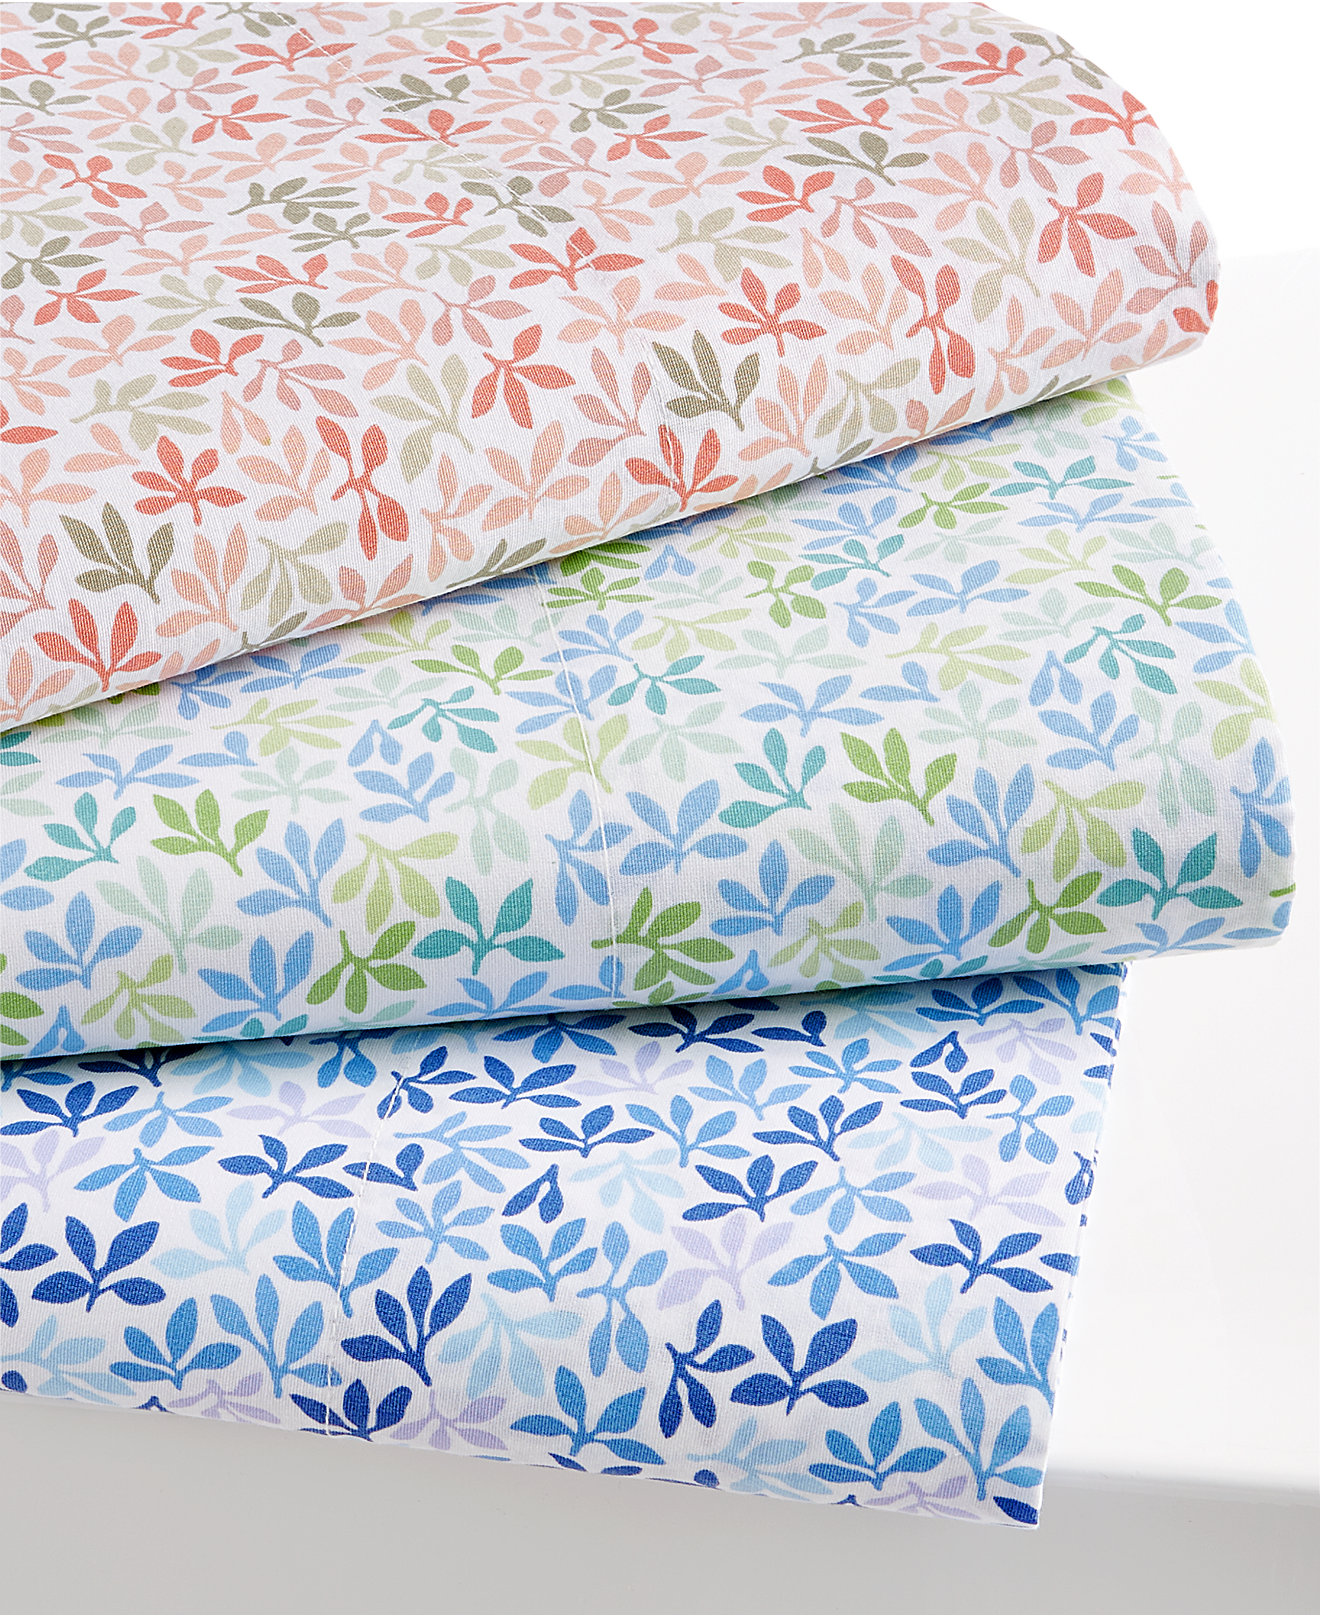 Attractive Cotton Percale Sheets With Amazing Combine Color Sheets Ideas